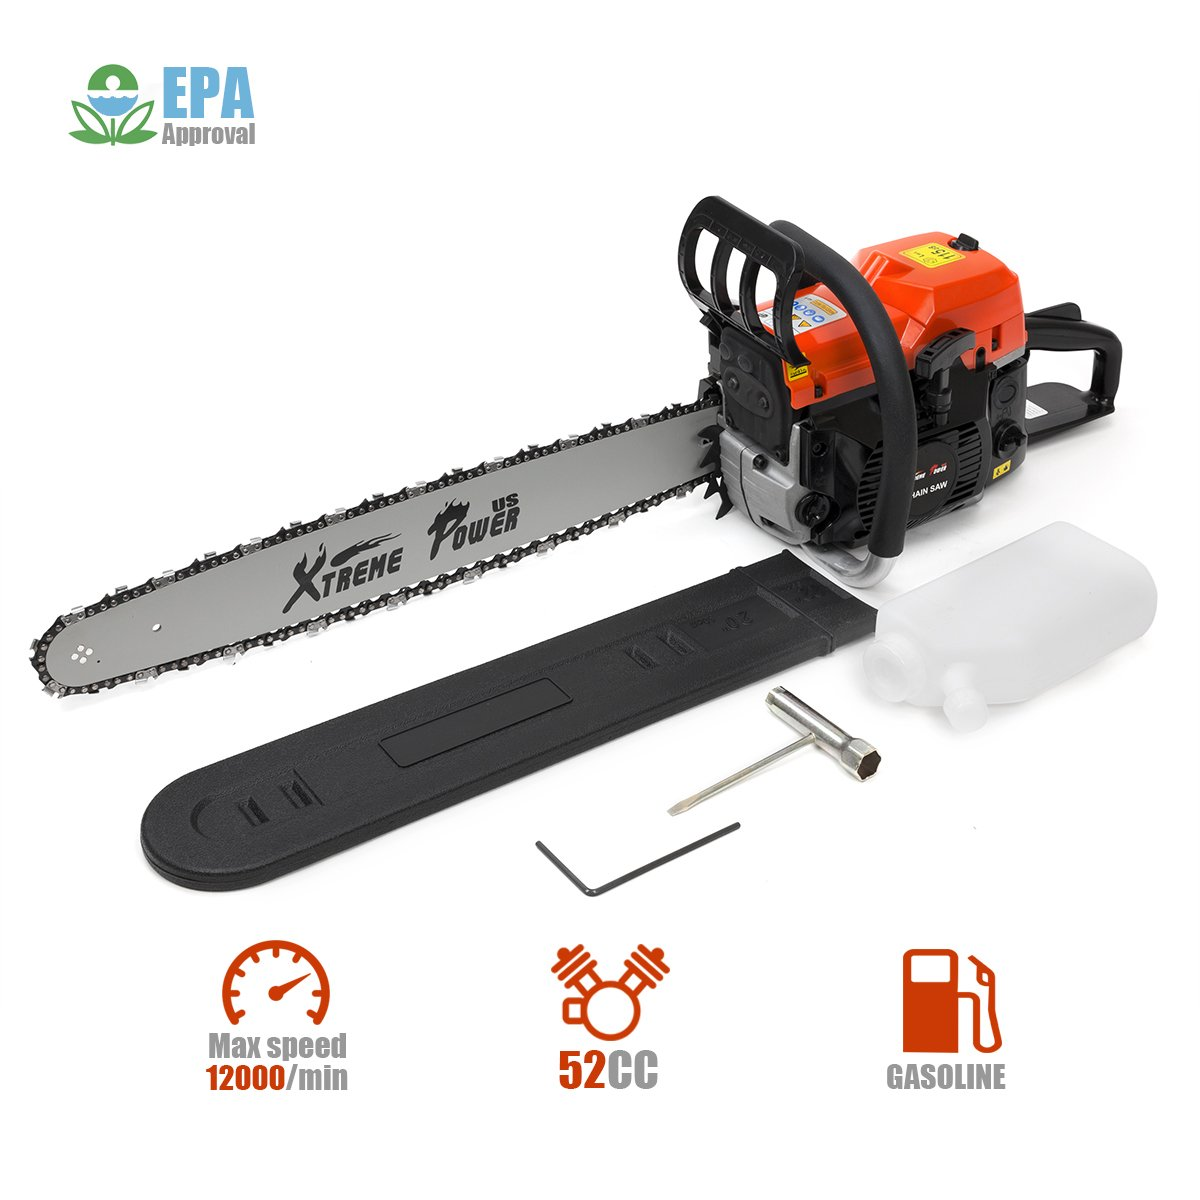 Top 10 Best Chainsaws Reviews in 2020 & Buying Guide 6